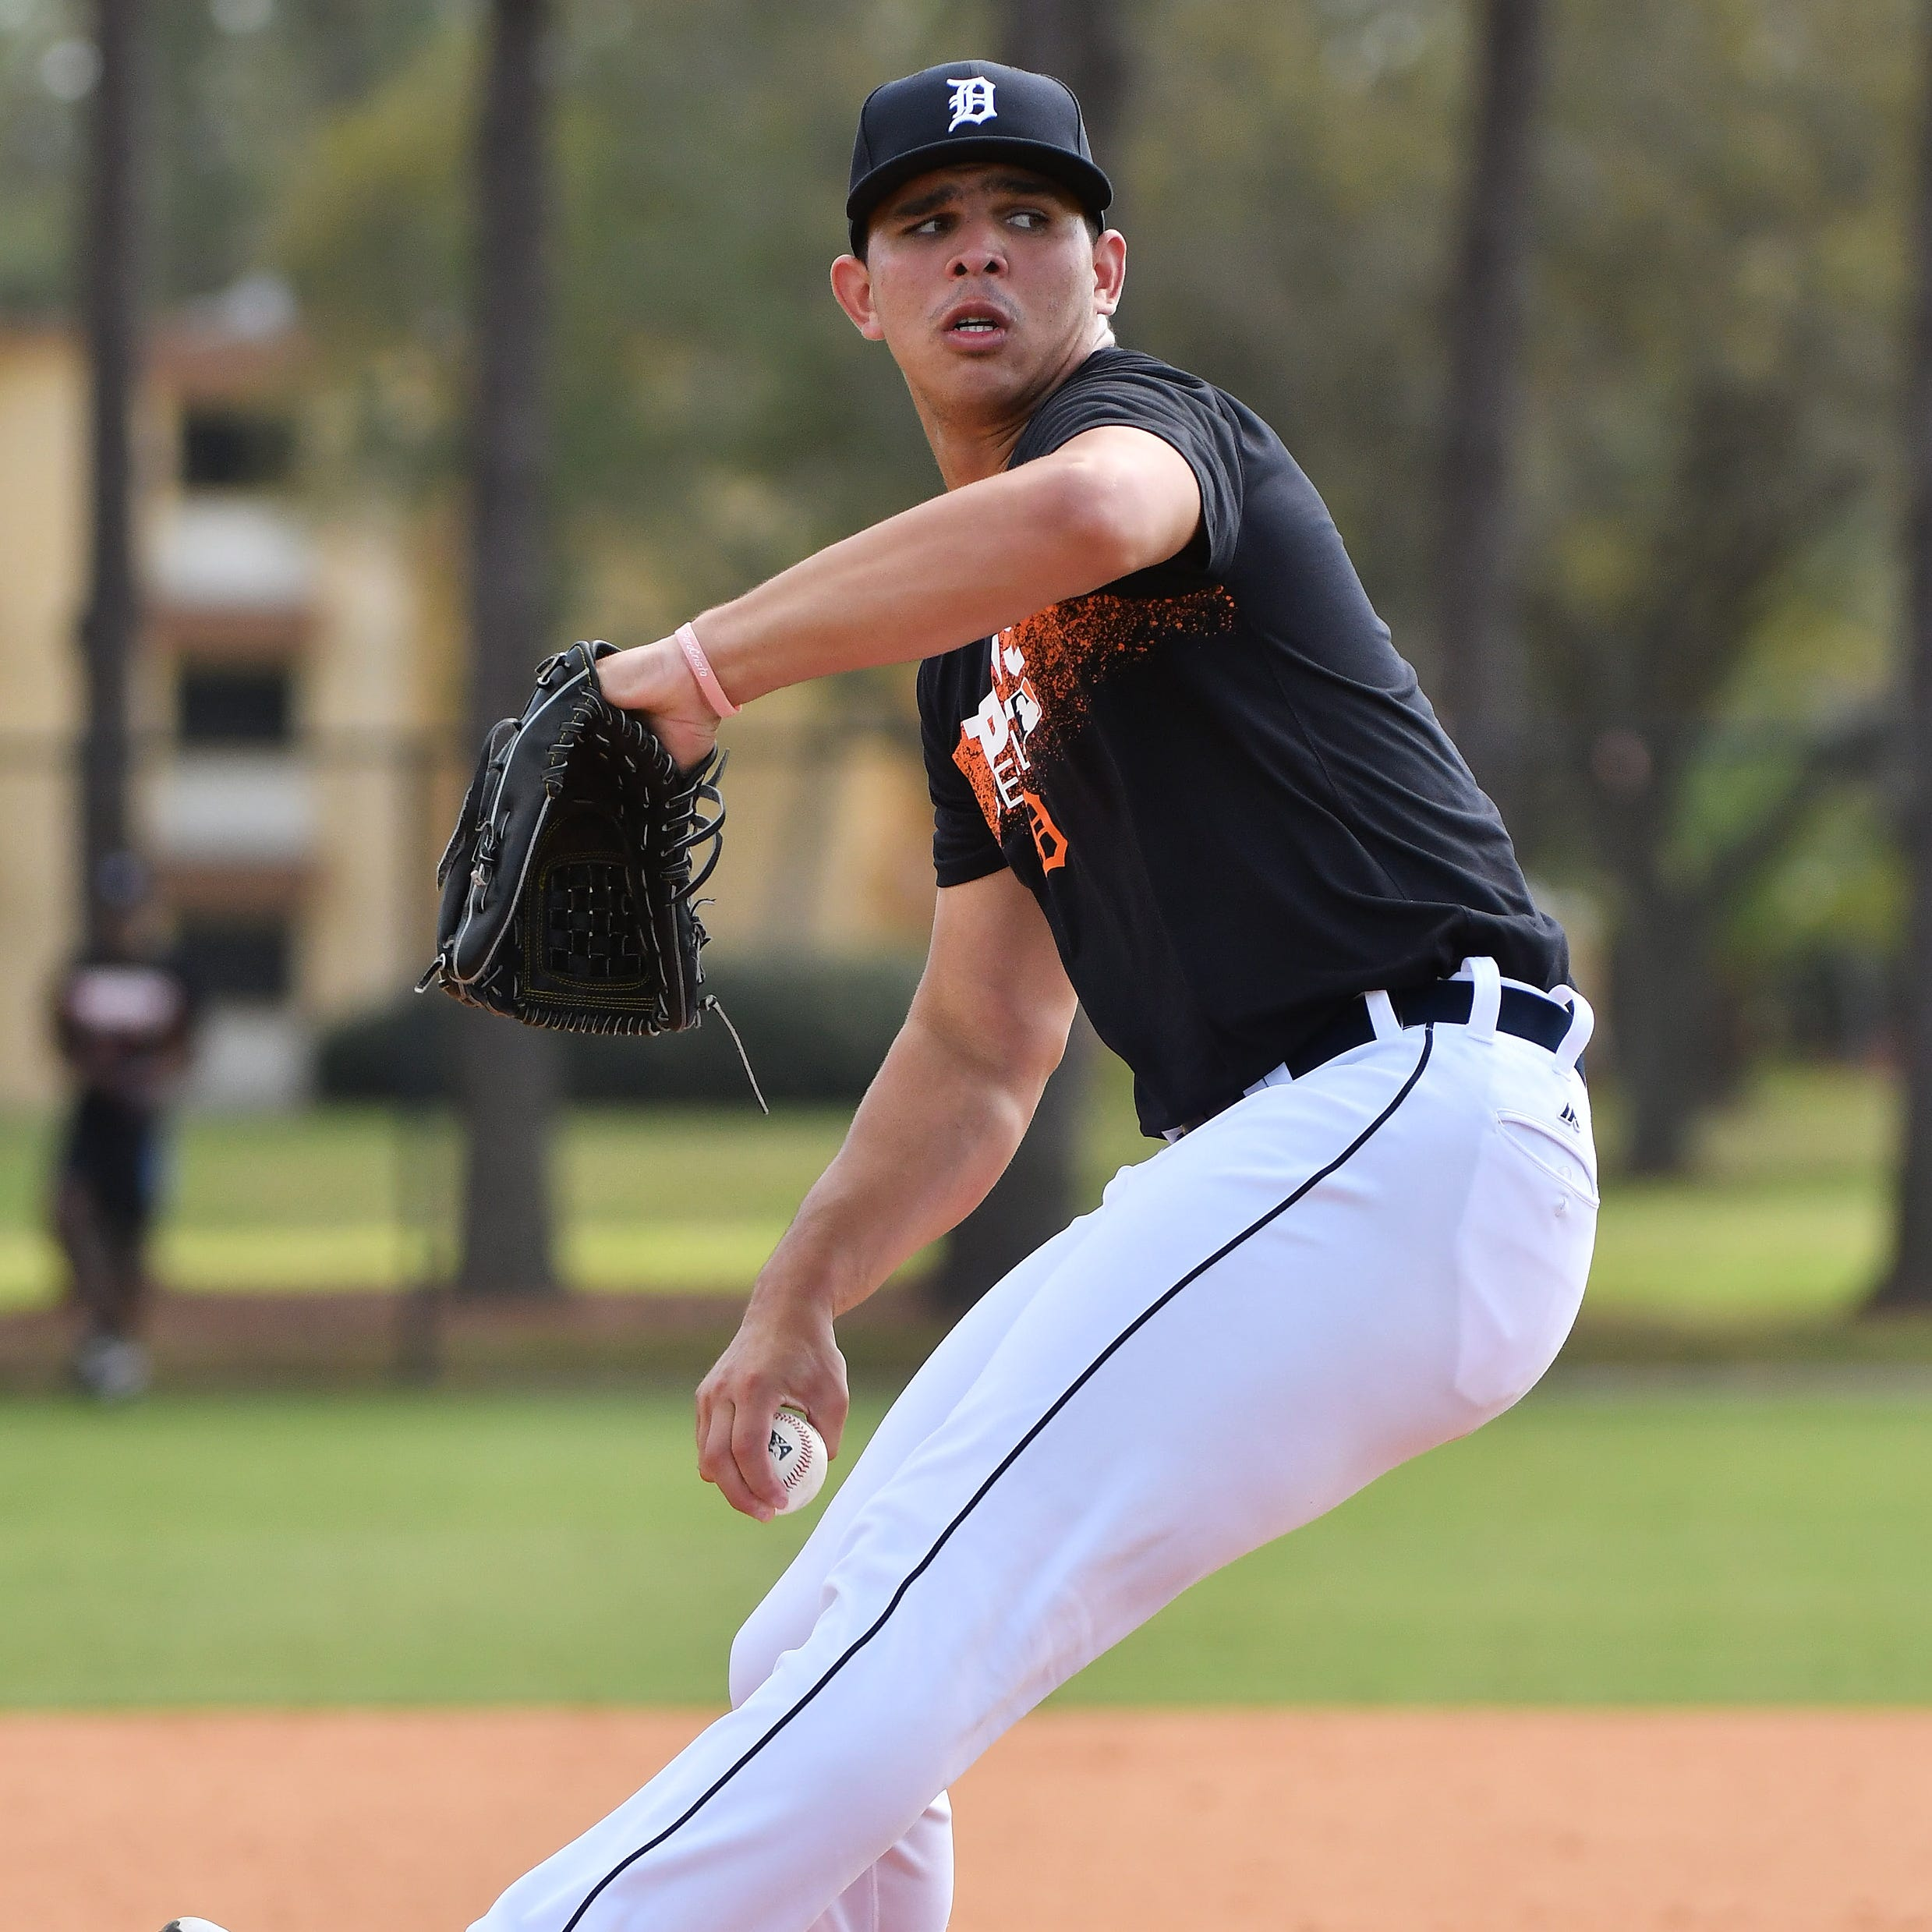 Tigers shut down No. 3 prospect Franklin Perez for 4-6 weeks